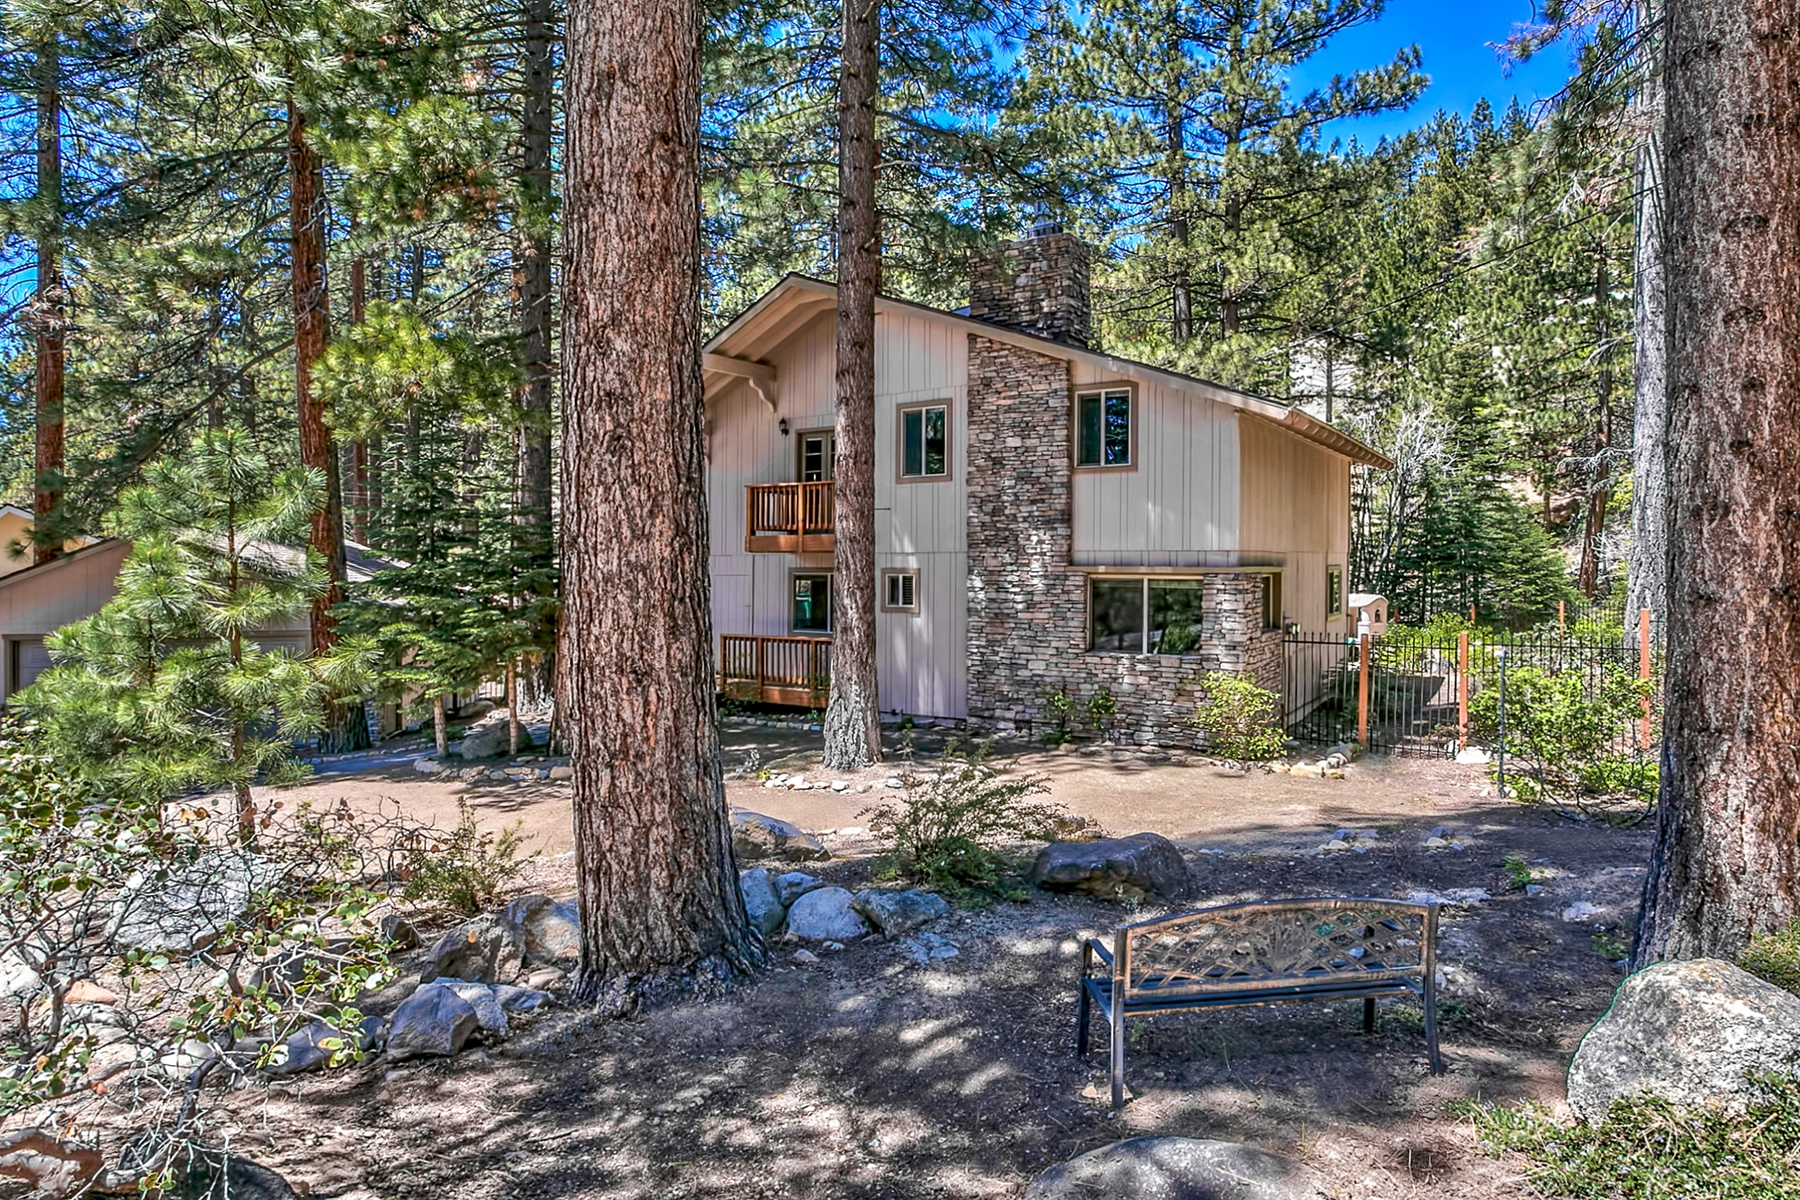 Single Family Home for Sale at 551 Lucille Drive Incline Village, Nevada, 89451 United States